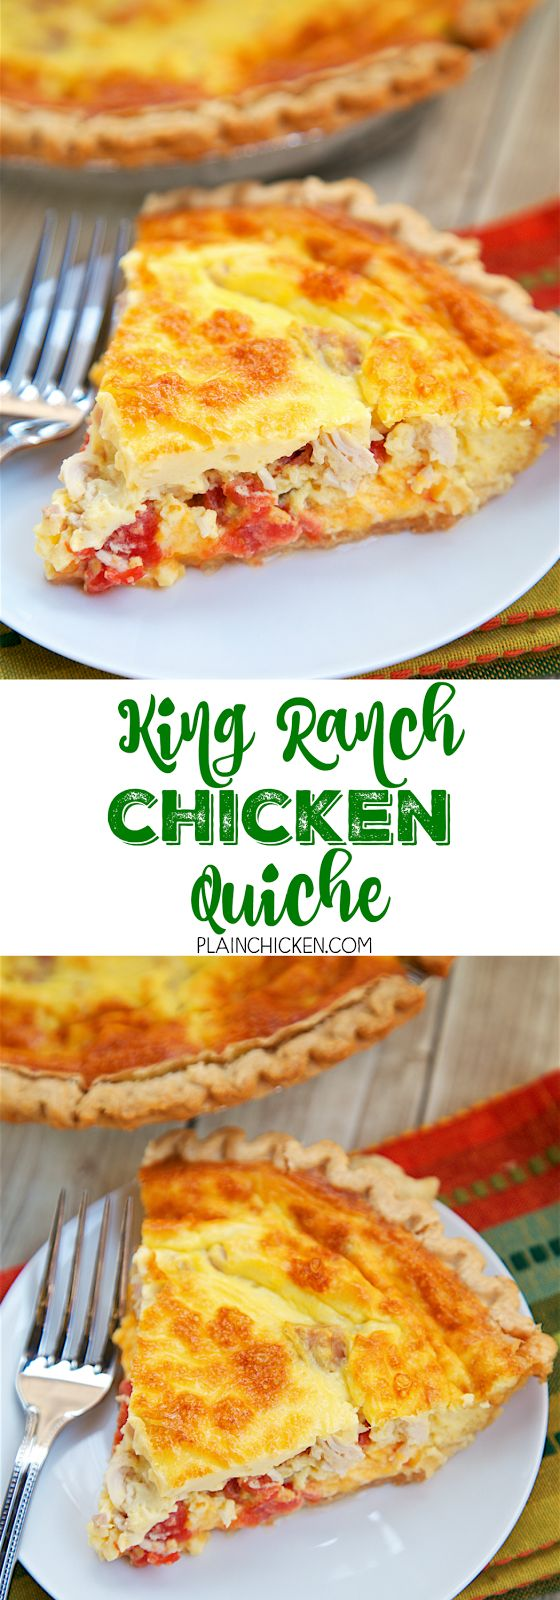 King Ranch Chicken Quiche - all the flavors of King Ranch Casserole in a quiche! Chicken, Rotel tomatoes, Velveeta, eggs and heavy cream baked in a pie crust. SOOOO good! We ate this for lunch and dinner the same day. You can make this ahead of time and f